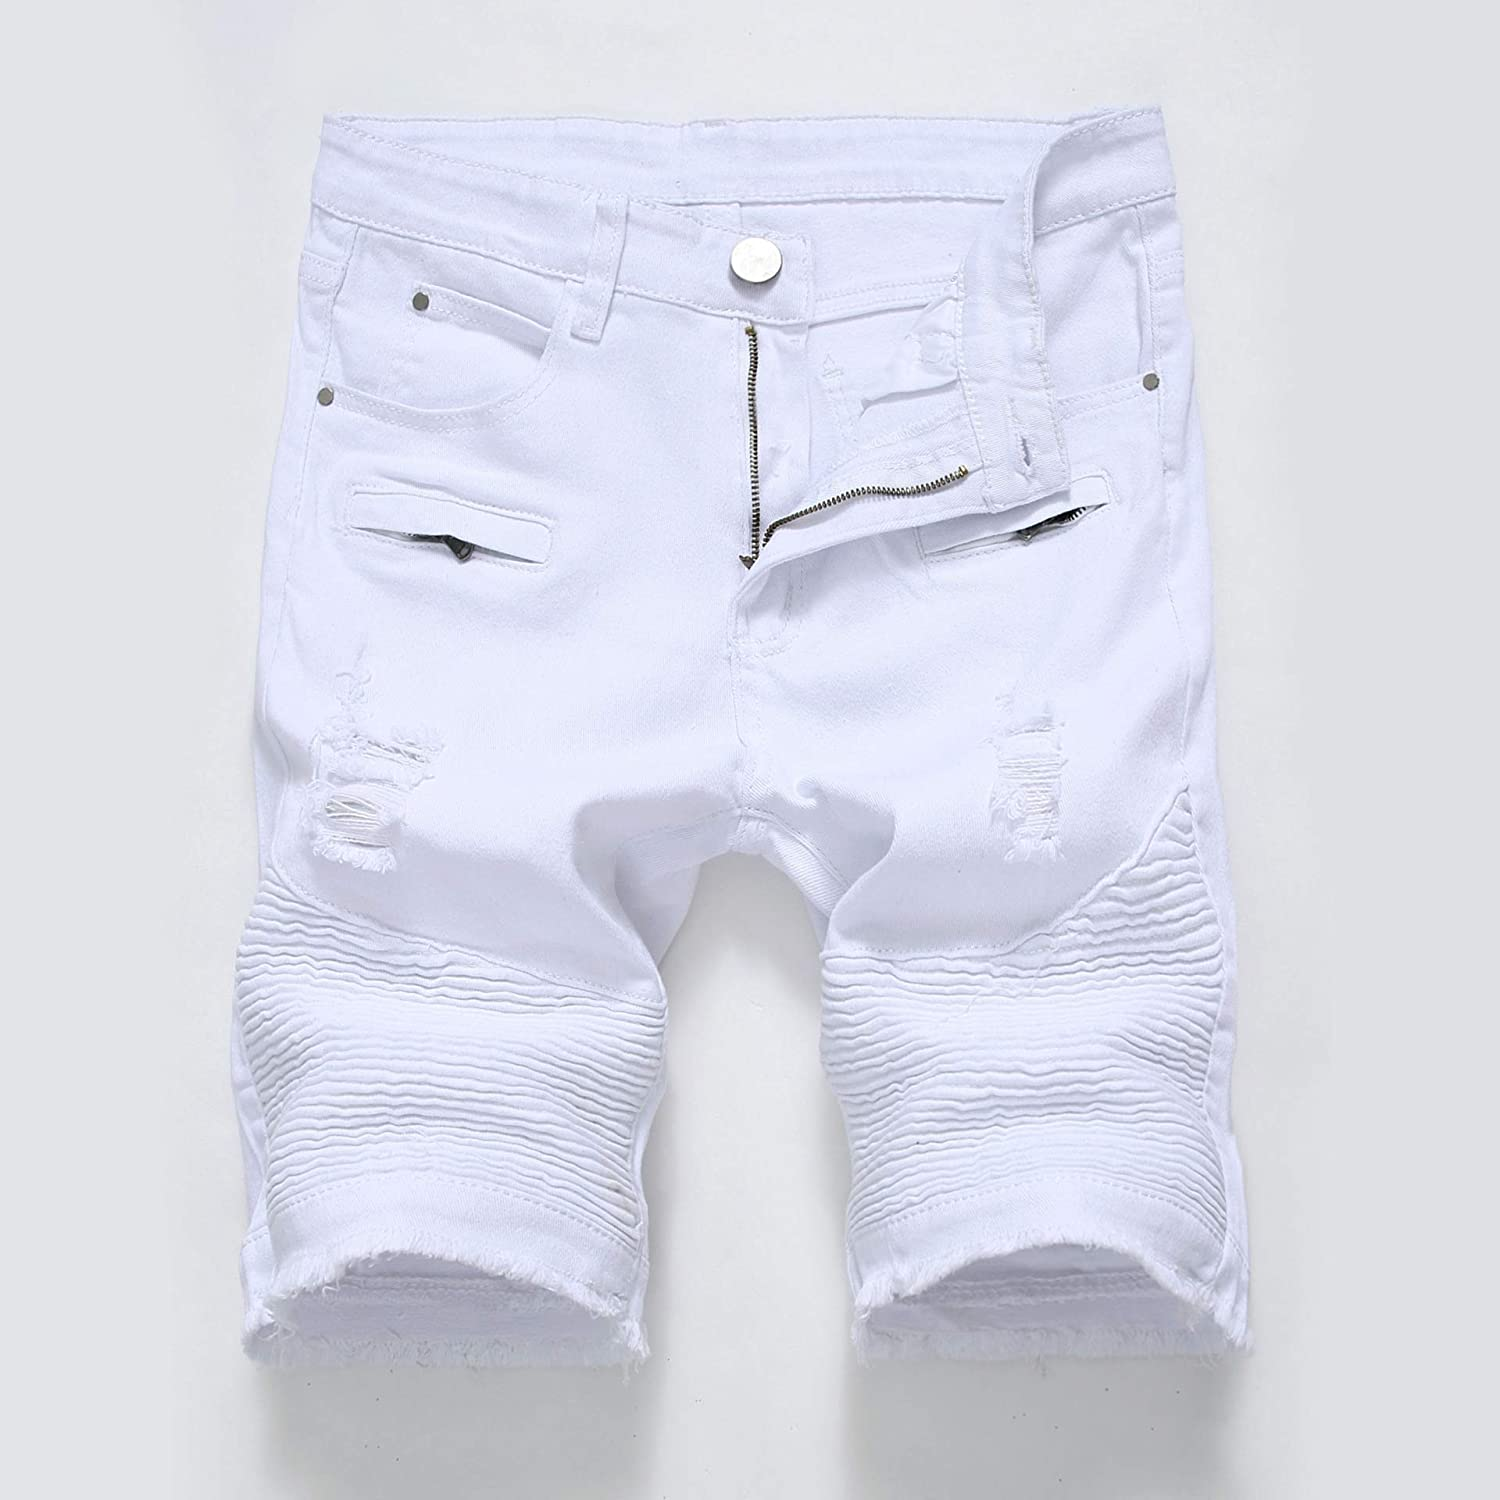 New arrival VooZuGn Mens White Denim Shorts Las Vegas Mall Stretch Pants Middle Motorcycle